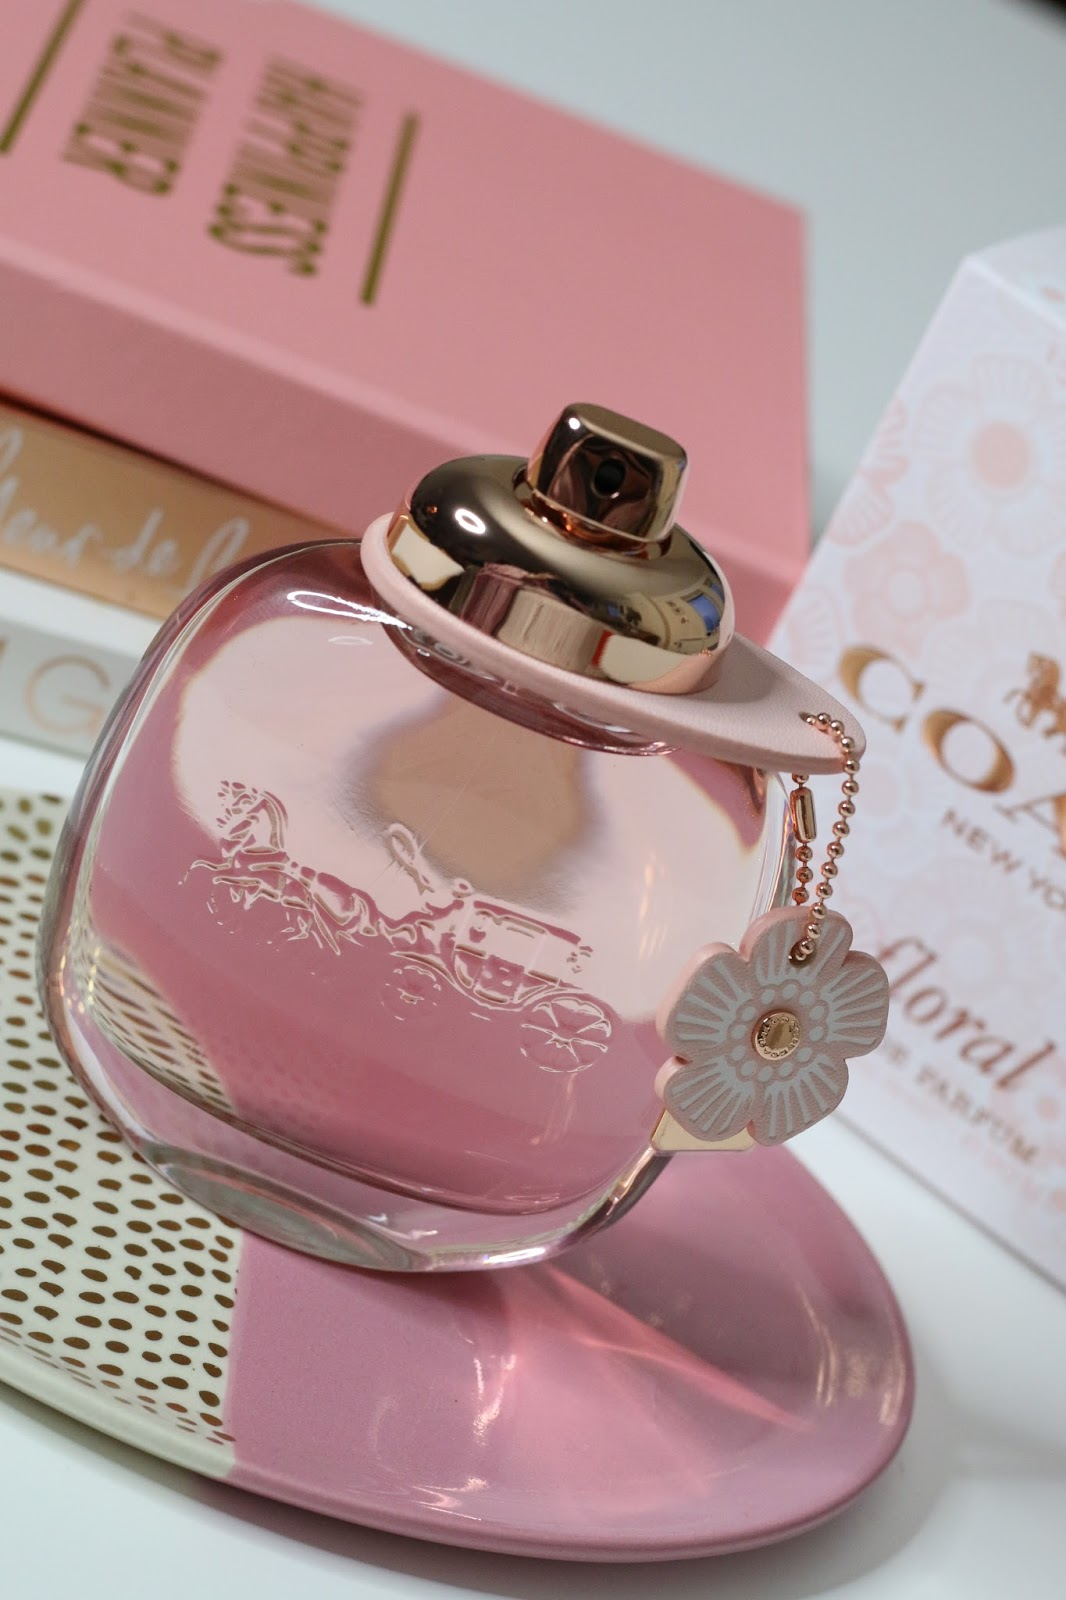 Coach Floral Fragrance Review by UK Perfume Beauty Blogger WhatLauraLoves